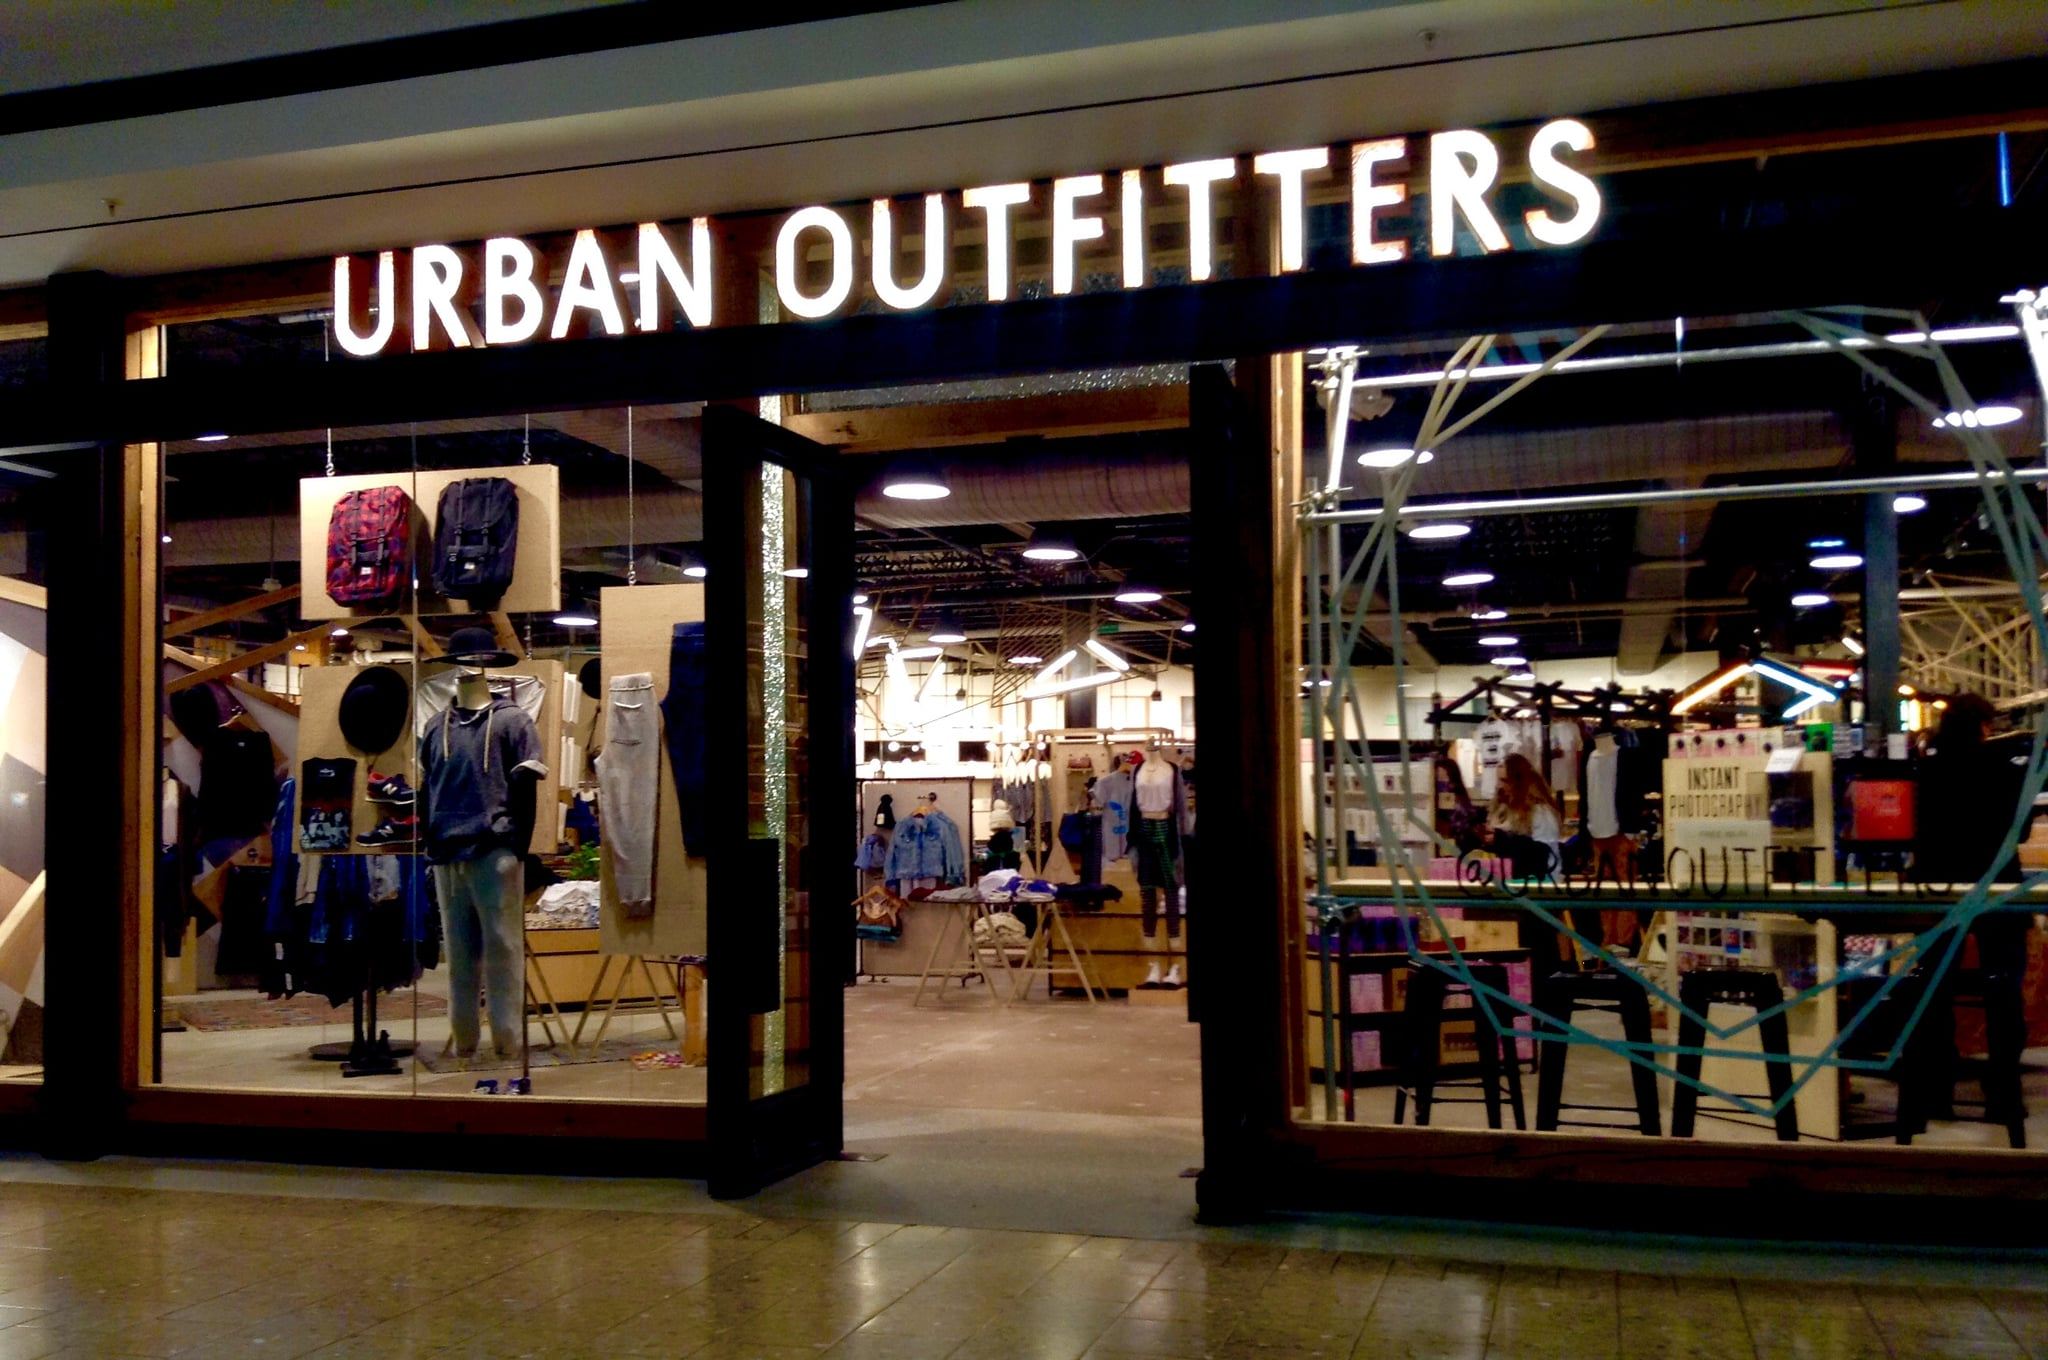 Urban Outfitters is a lifestyle retailer offering a mix of trendy women's and men's clothing, backpacks, beauty products, intimates, shoes, and hand-picked vintage clothing. They also provide everything you'll need to decorate your small space. All online orders over $50 include free shipping.